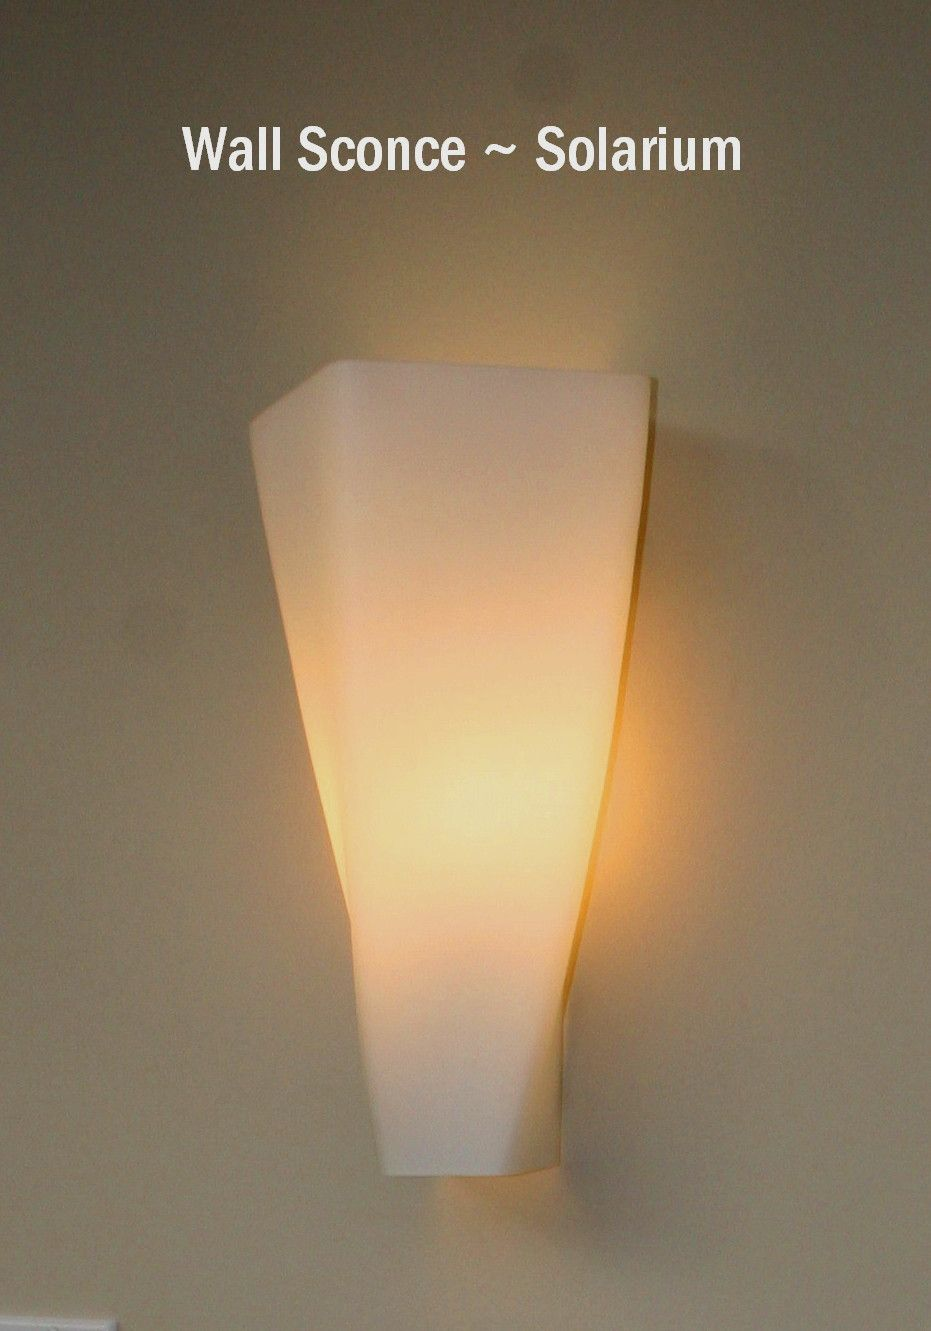 Wall sconce light fixture with an \'organic\' look giving a soft ...